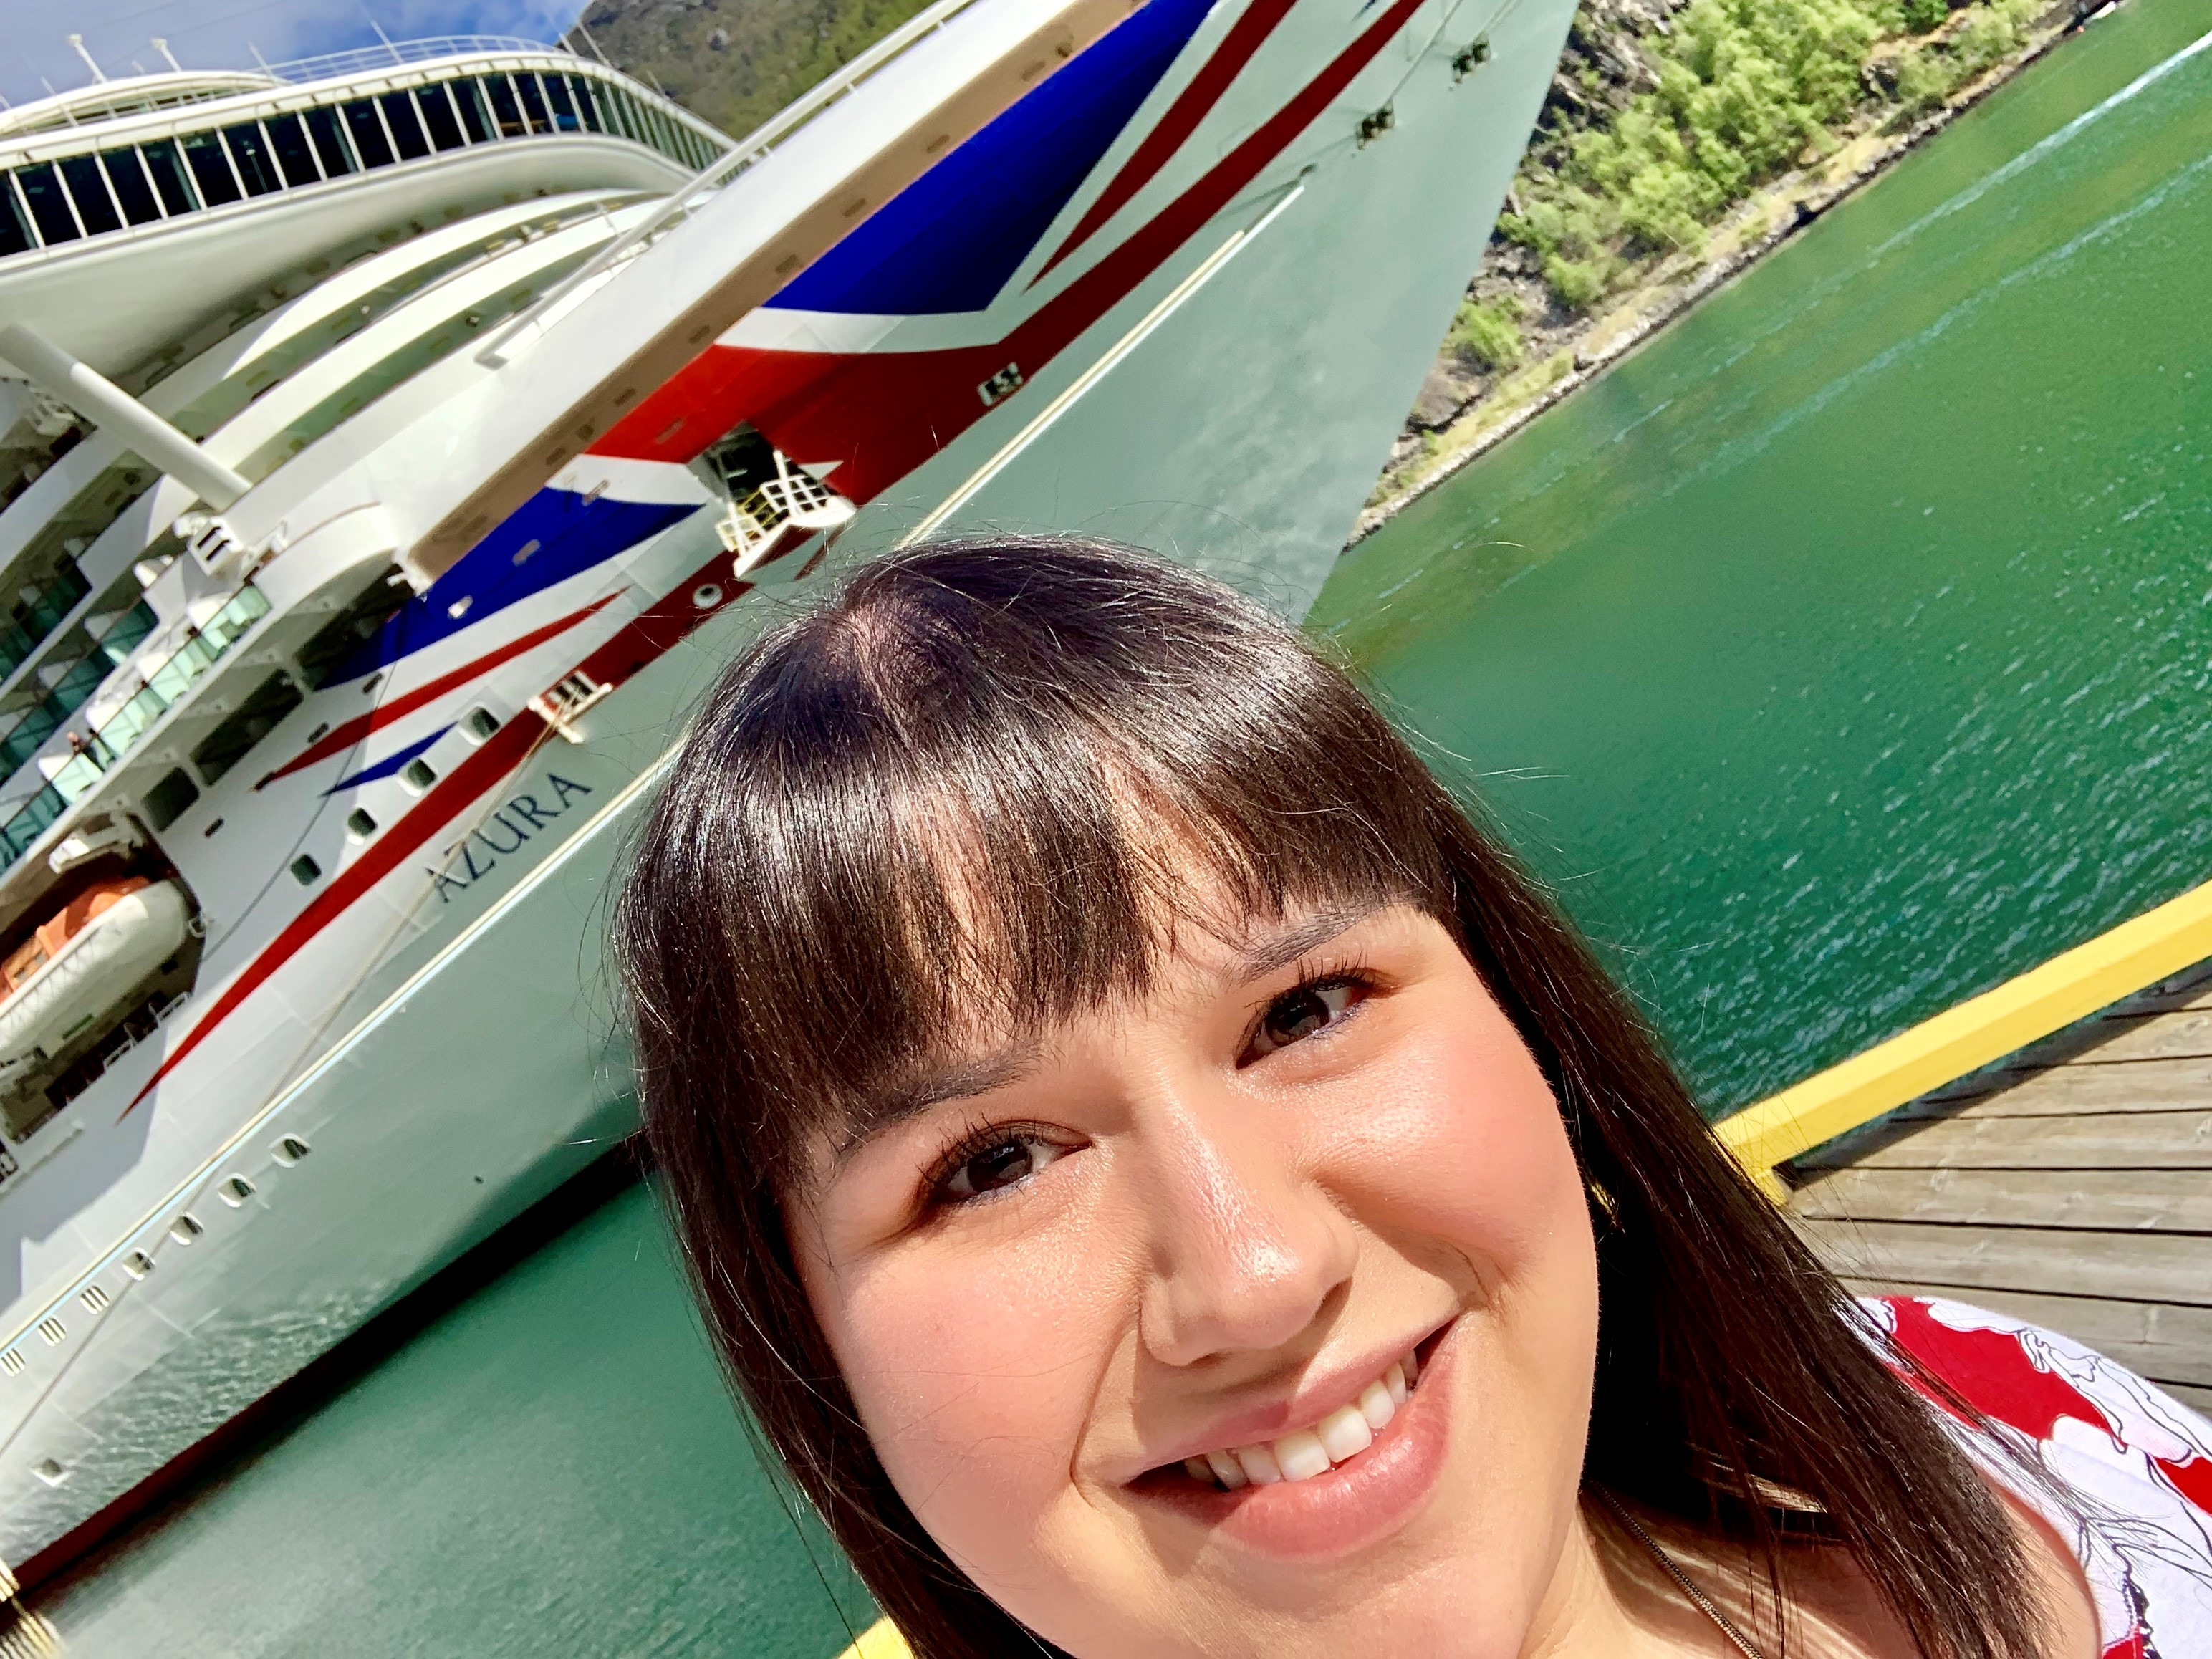 Sam in front of a Cruise Ship